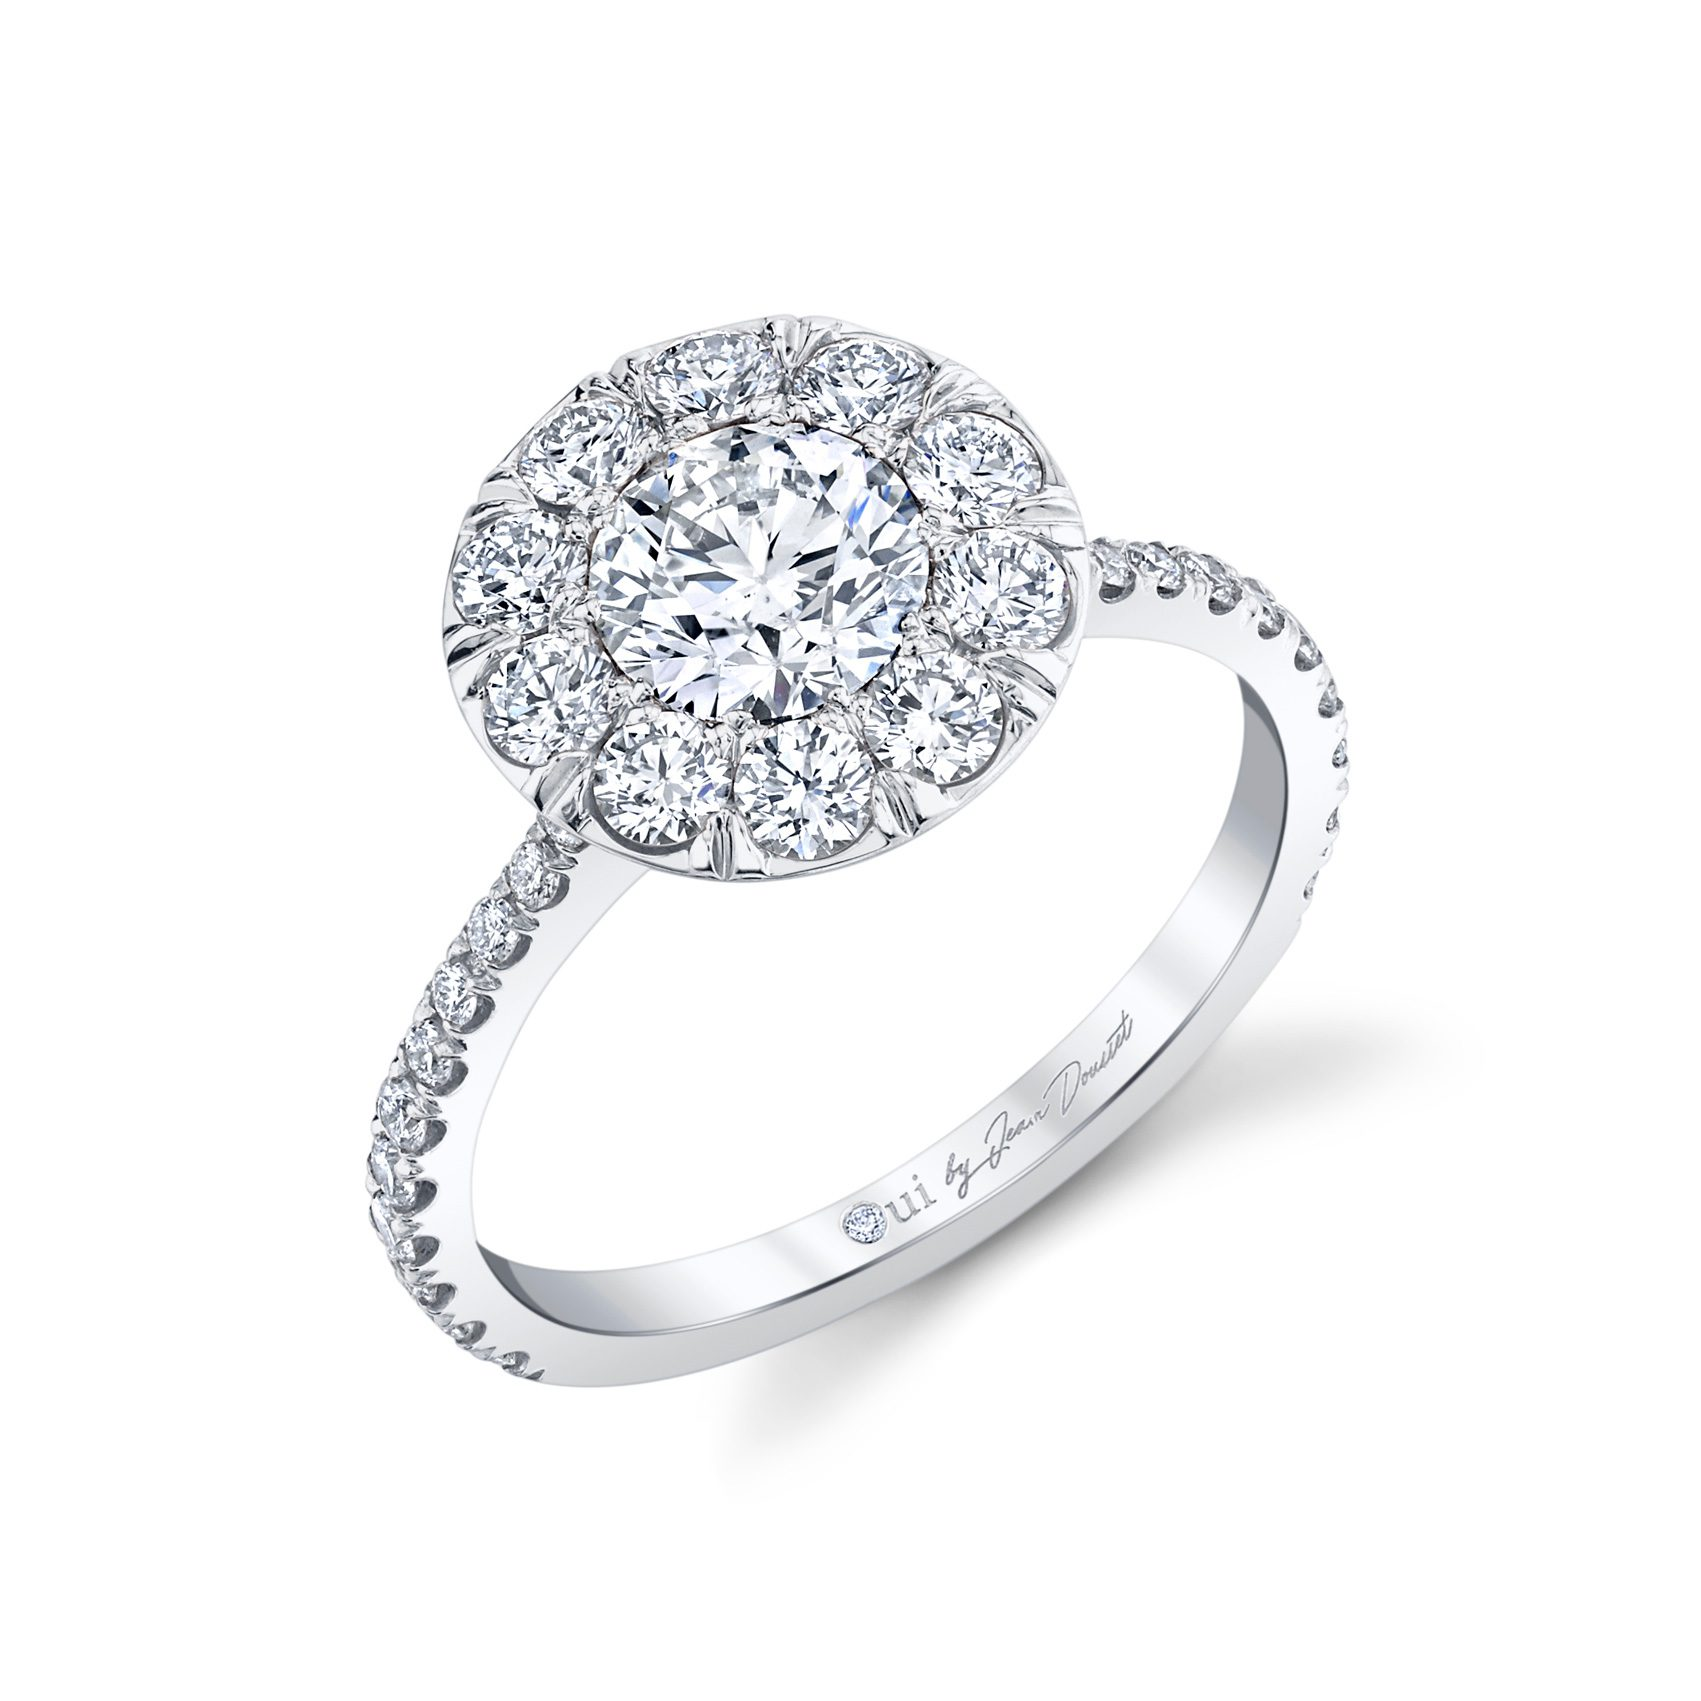 Eloise Floating Round Brilliant Seamless Solitaire® Engagement Ring with diamond pavé in 18k White Gold Profile View by Oui by Jean Dousset